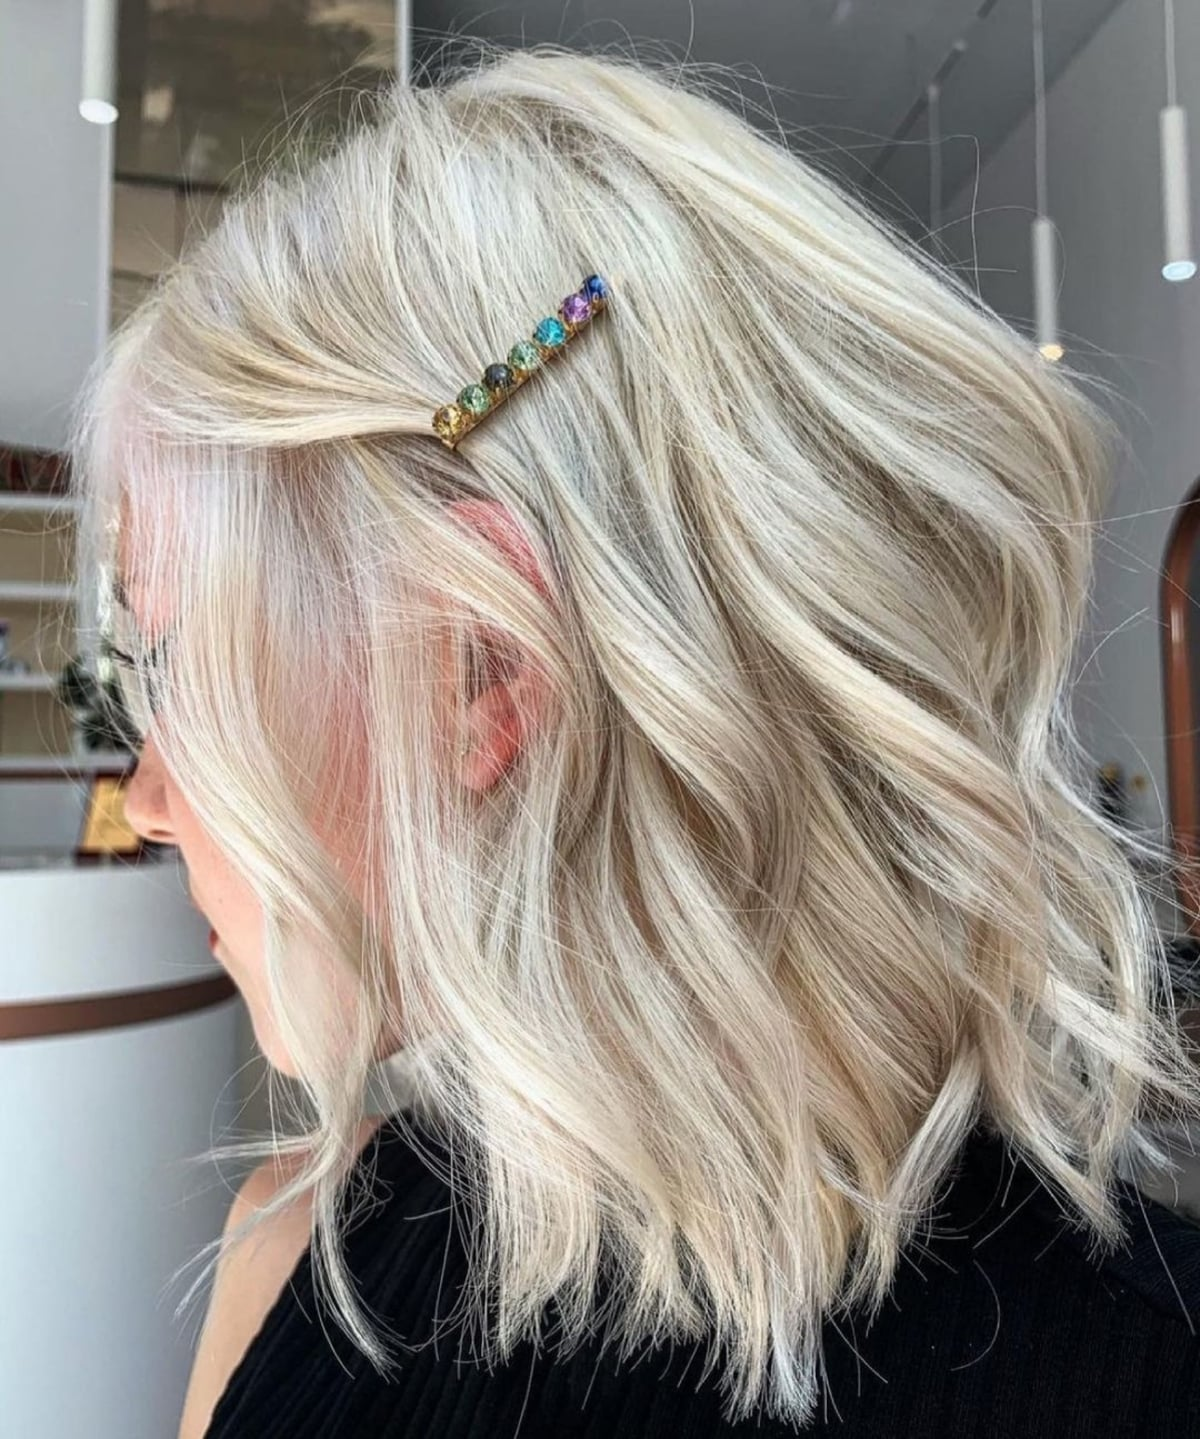 25 Easy and Simple Hairstyles That You've Gotta Try This Year